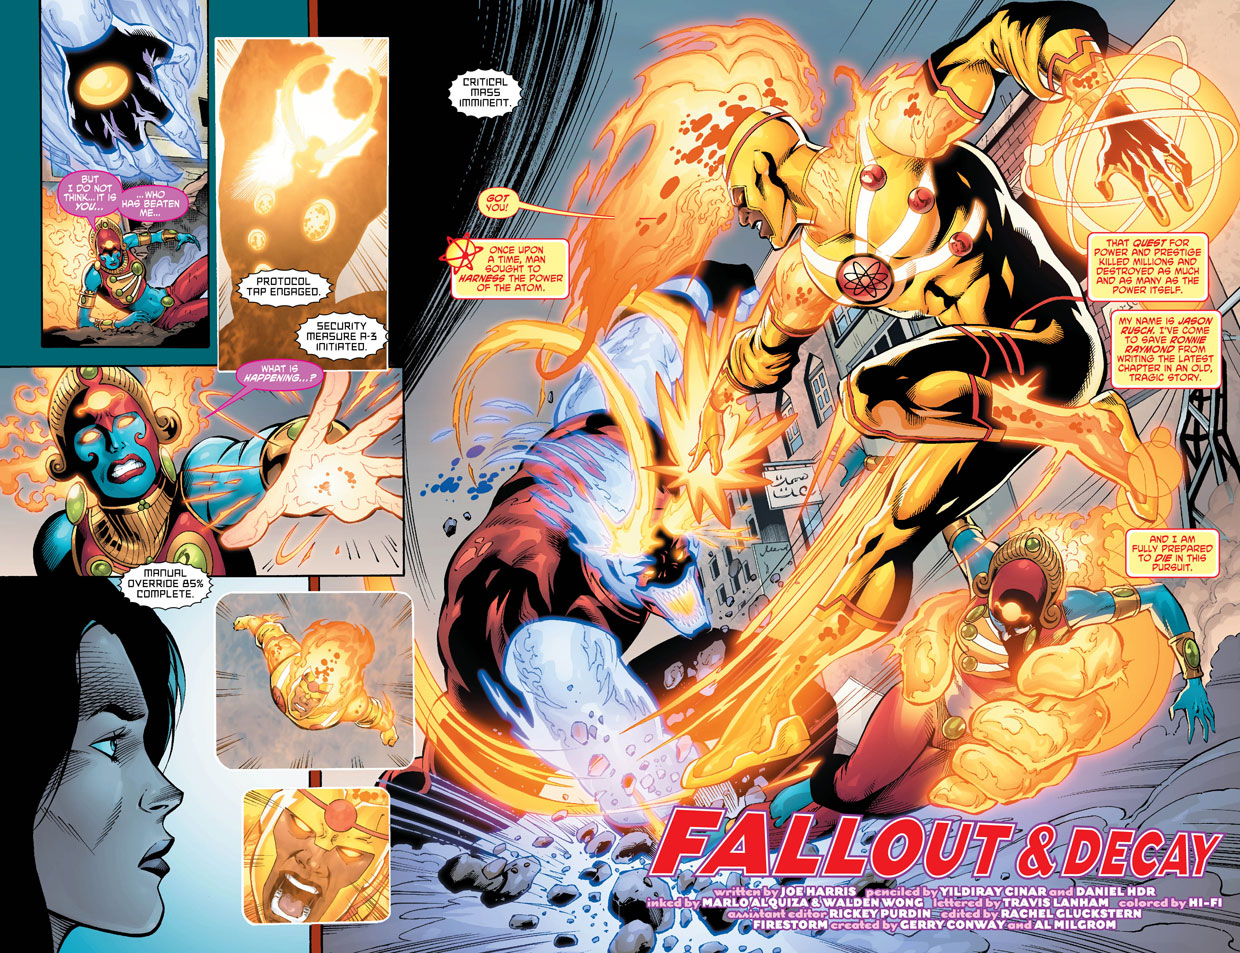 Fury of Firestorm: The Nuclear Men #12 by Joe Harris, Yildiray Cinar, Marlo Alquiza, and Hi-Fi Color